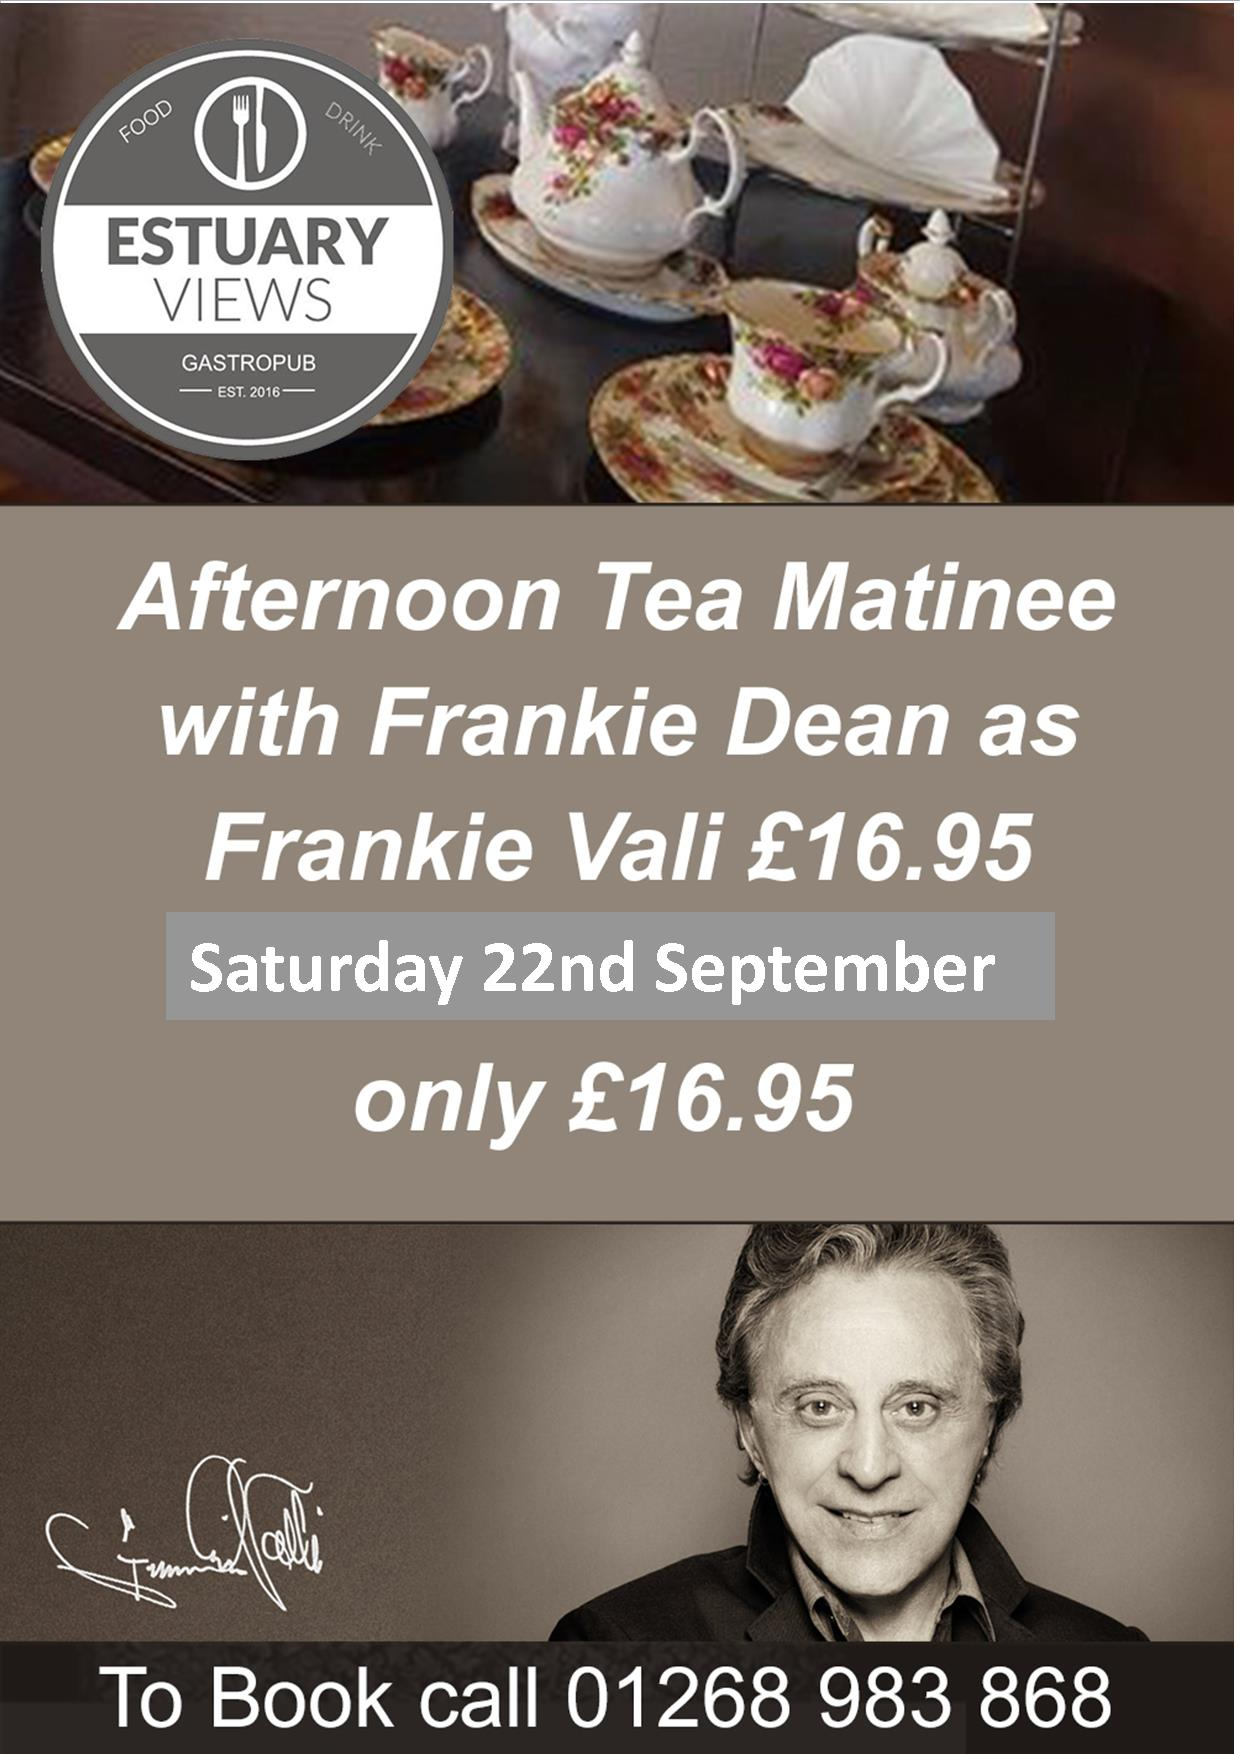 Afternoon Tea with Frankie Dean as Frankie Valli